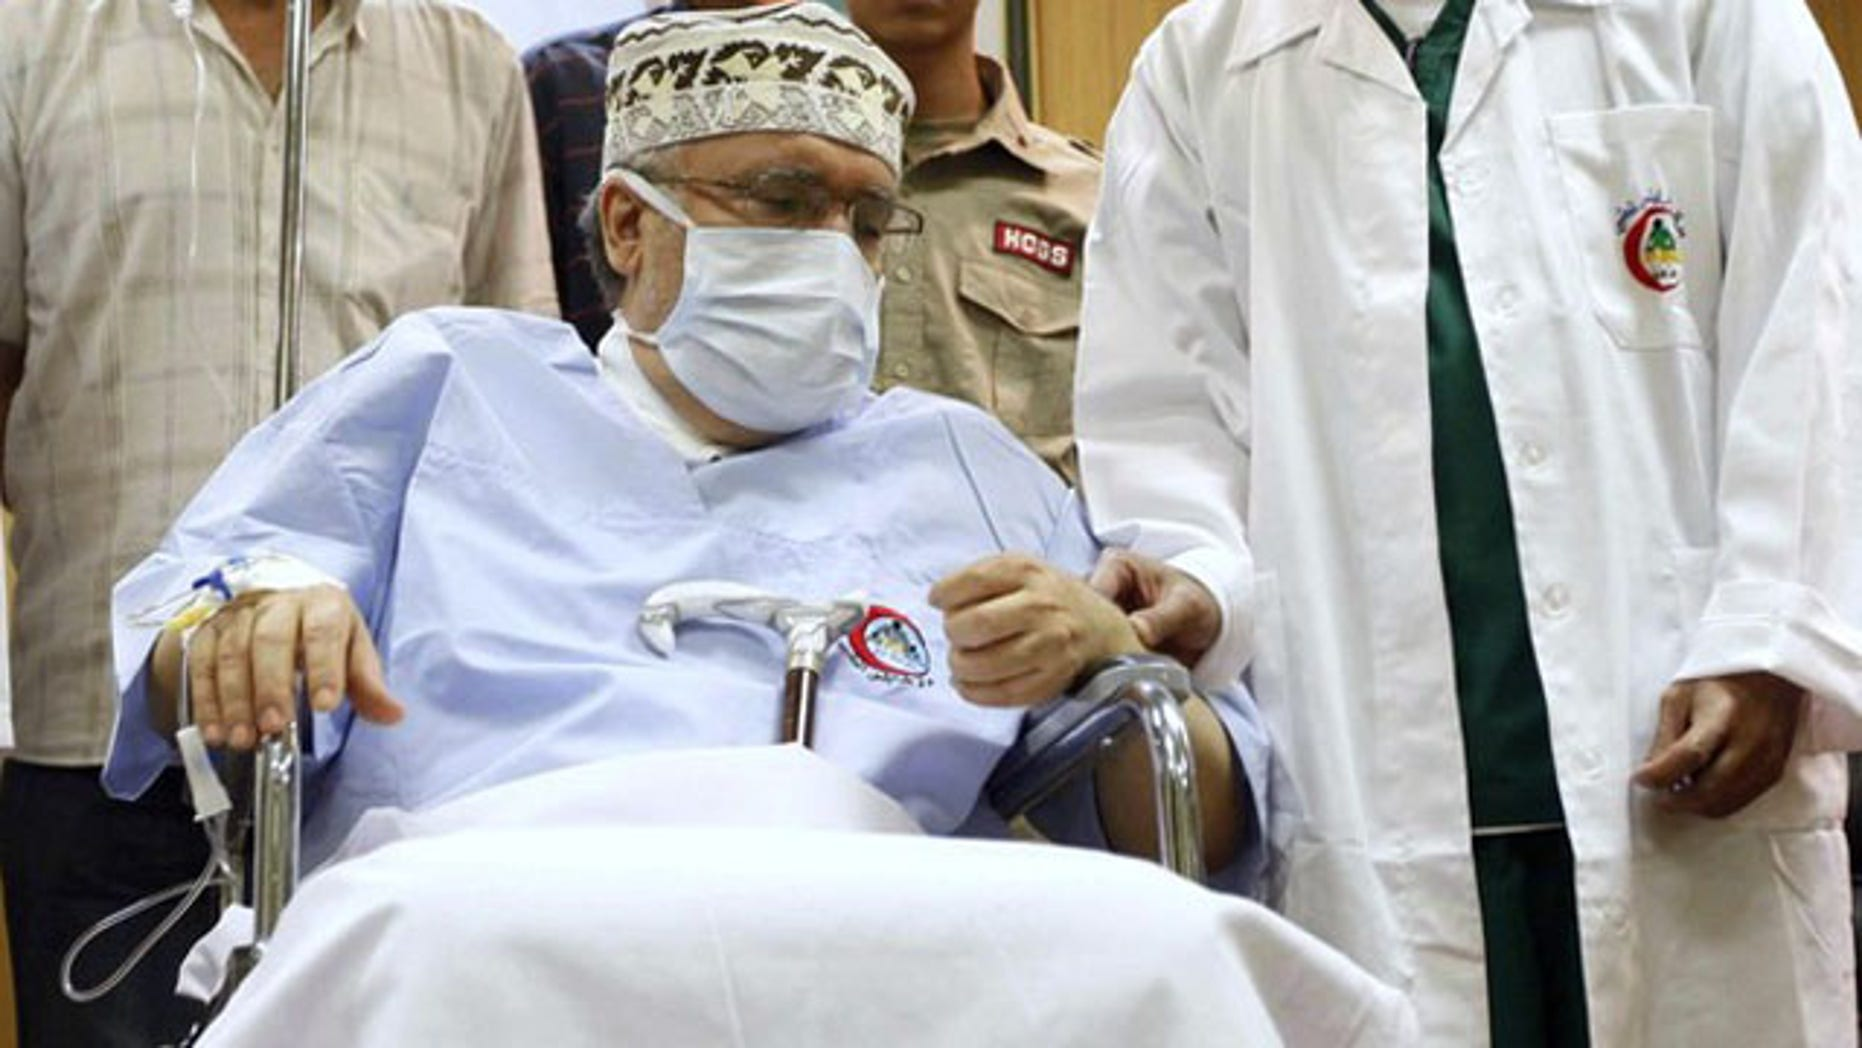 Convicted Lockerbie bomber Abdel Basset al-Megrahi is seen in his room at a hospital in Tripoli in this September 9, 2009 file photo (Reuters).